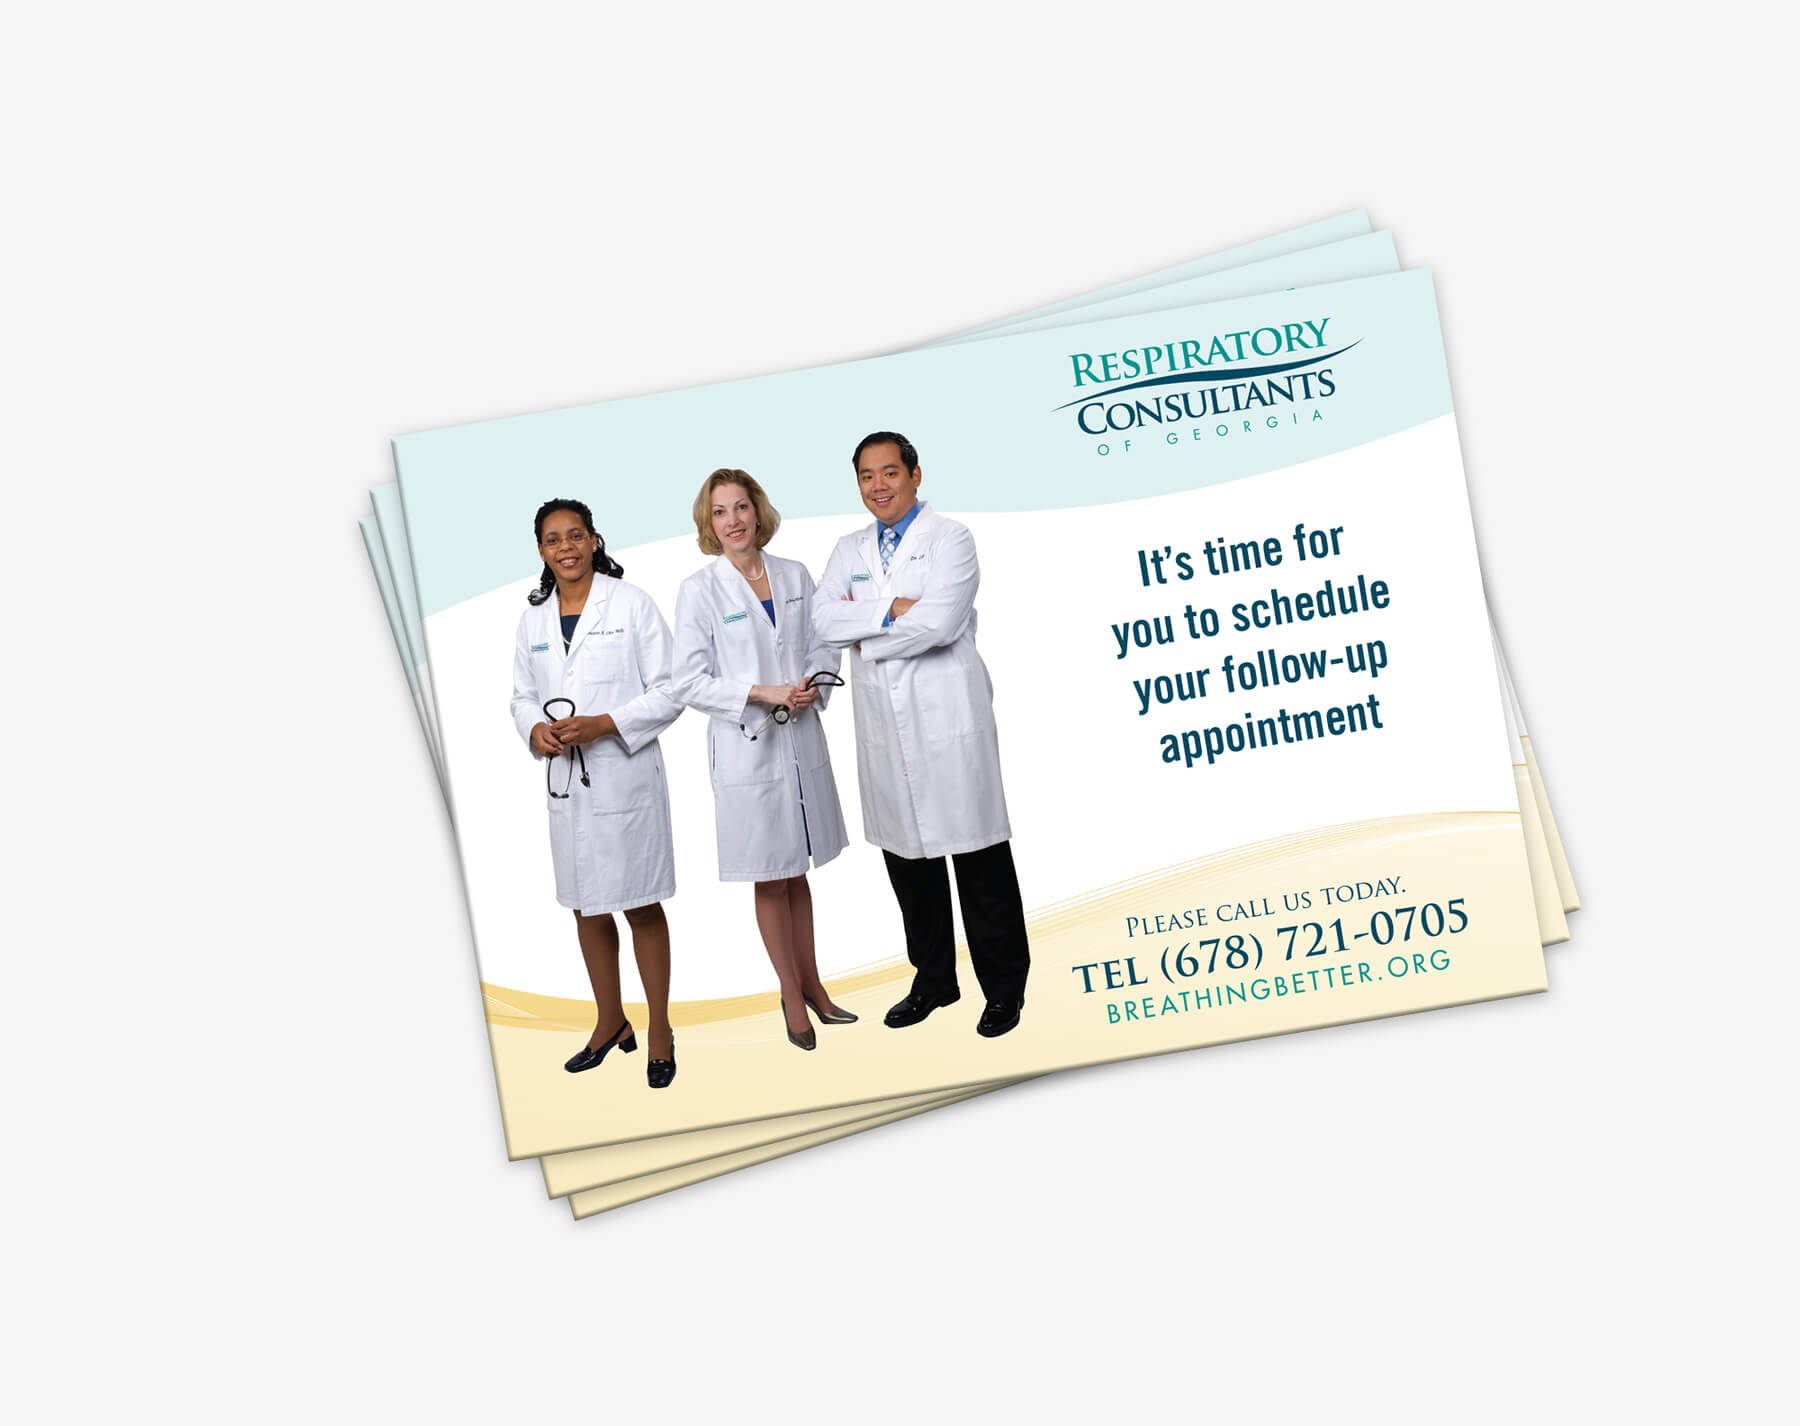 Image perceived to contain People Person Human Brochure Flyer Paper Poster Nurse  on the Calhoun, GA Web Design page